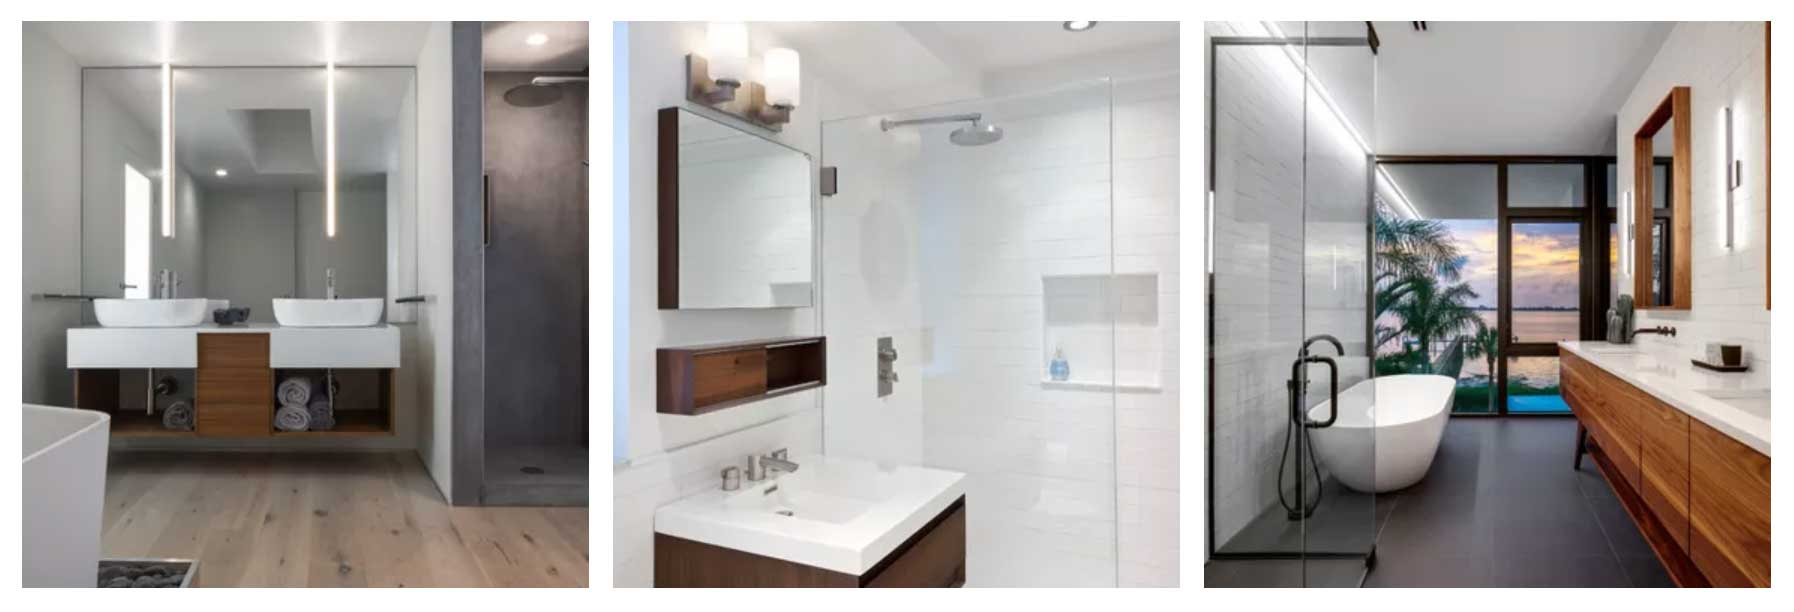 Cost of Renovating a Bathroom - Service Seeking Price Guides Houzz Guest Bathroom Design Html on master bathrooms houzz, guest bathrooms pinterest, small bathrooms houzz, gray bathrooms houzz, guest bathrooms home, white bathrooms houzz,